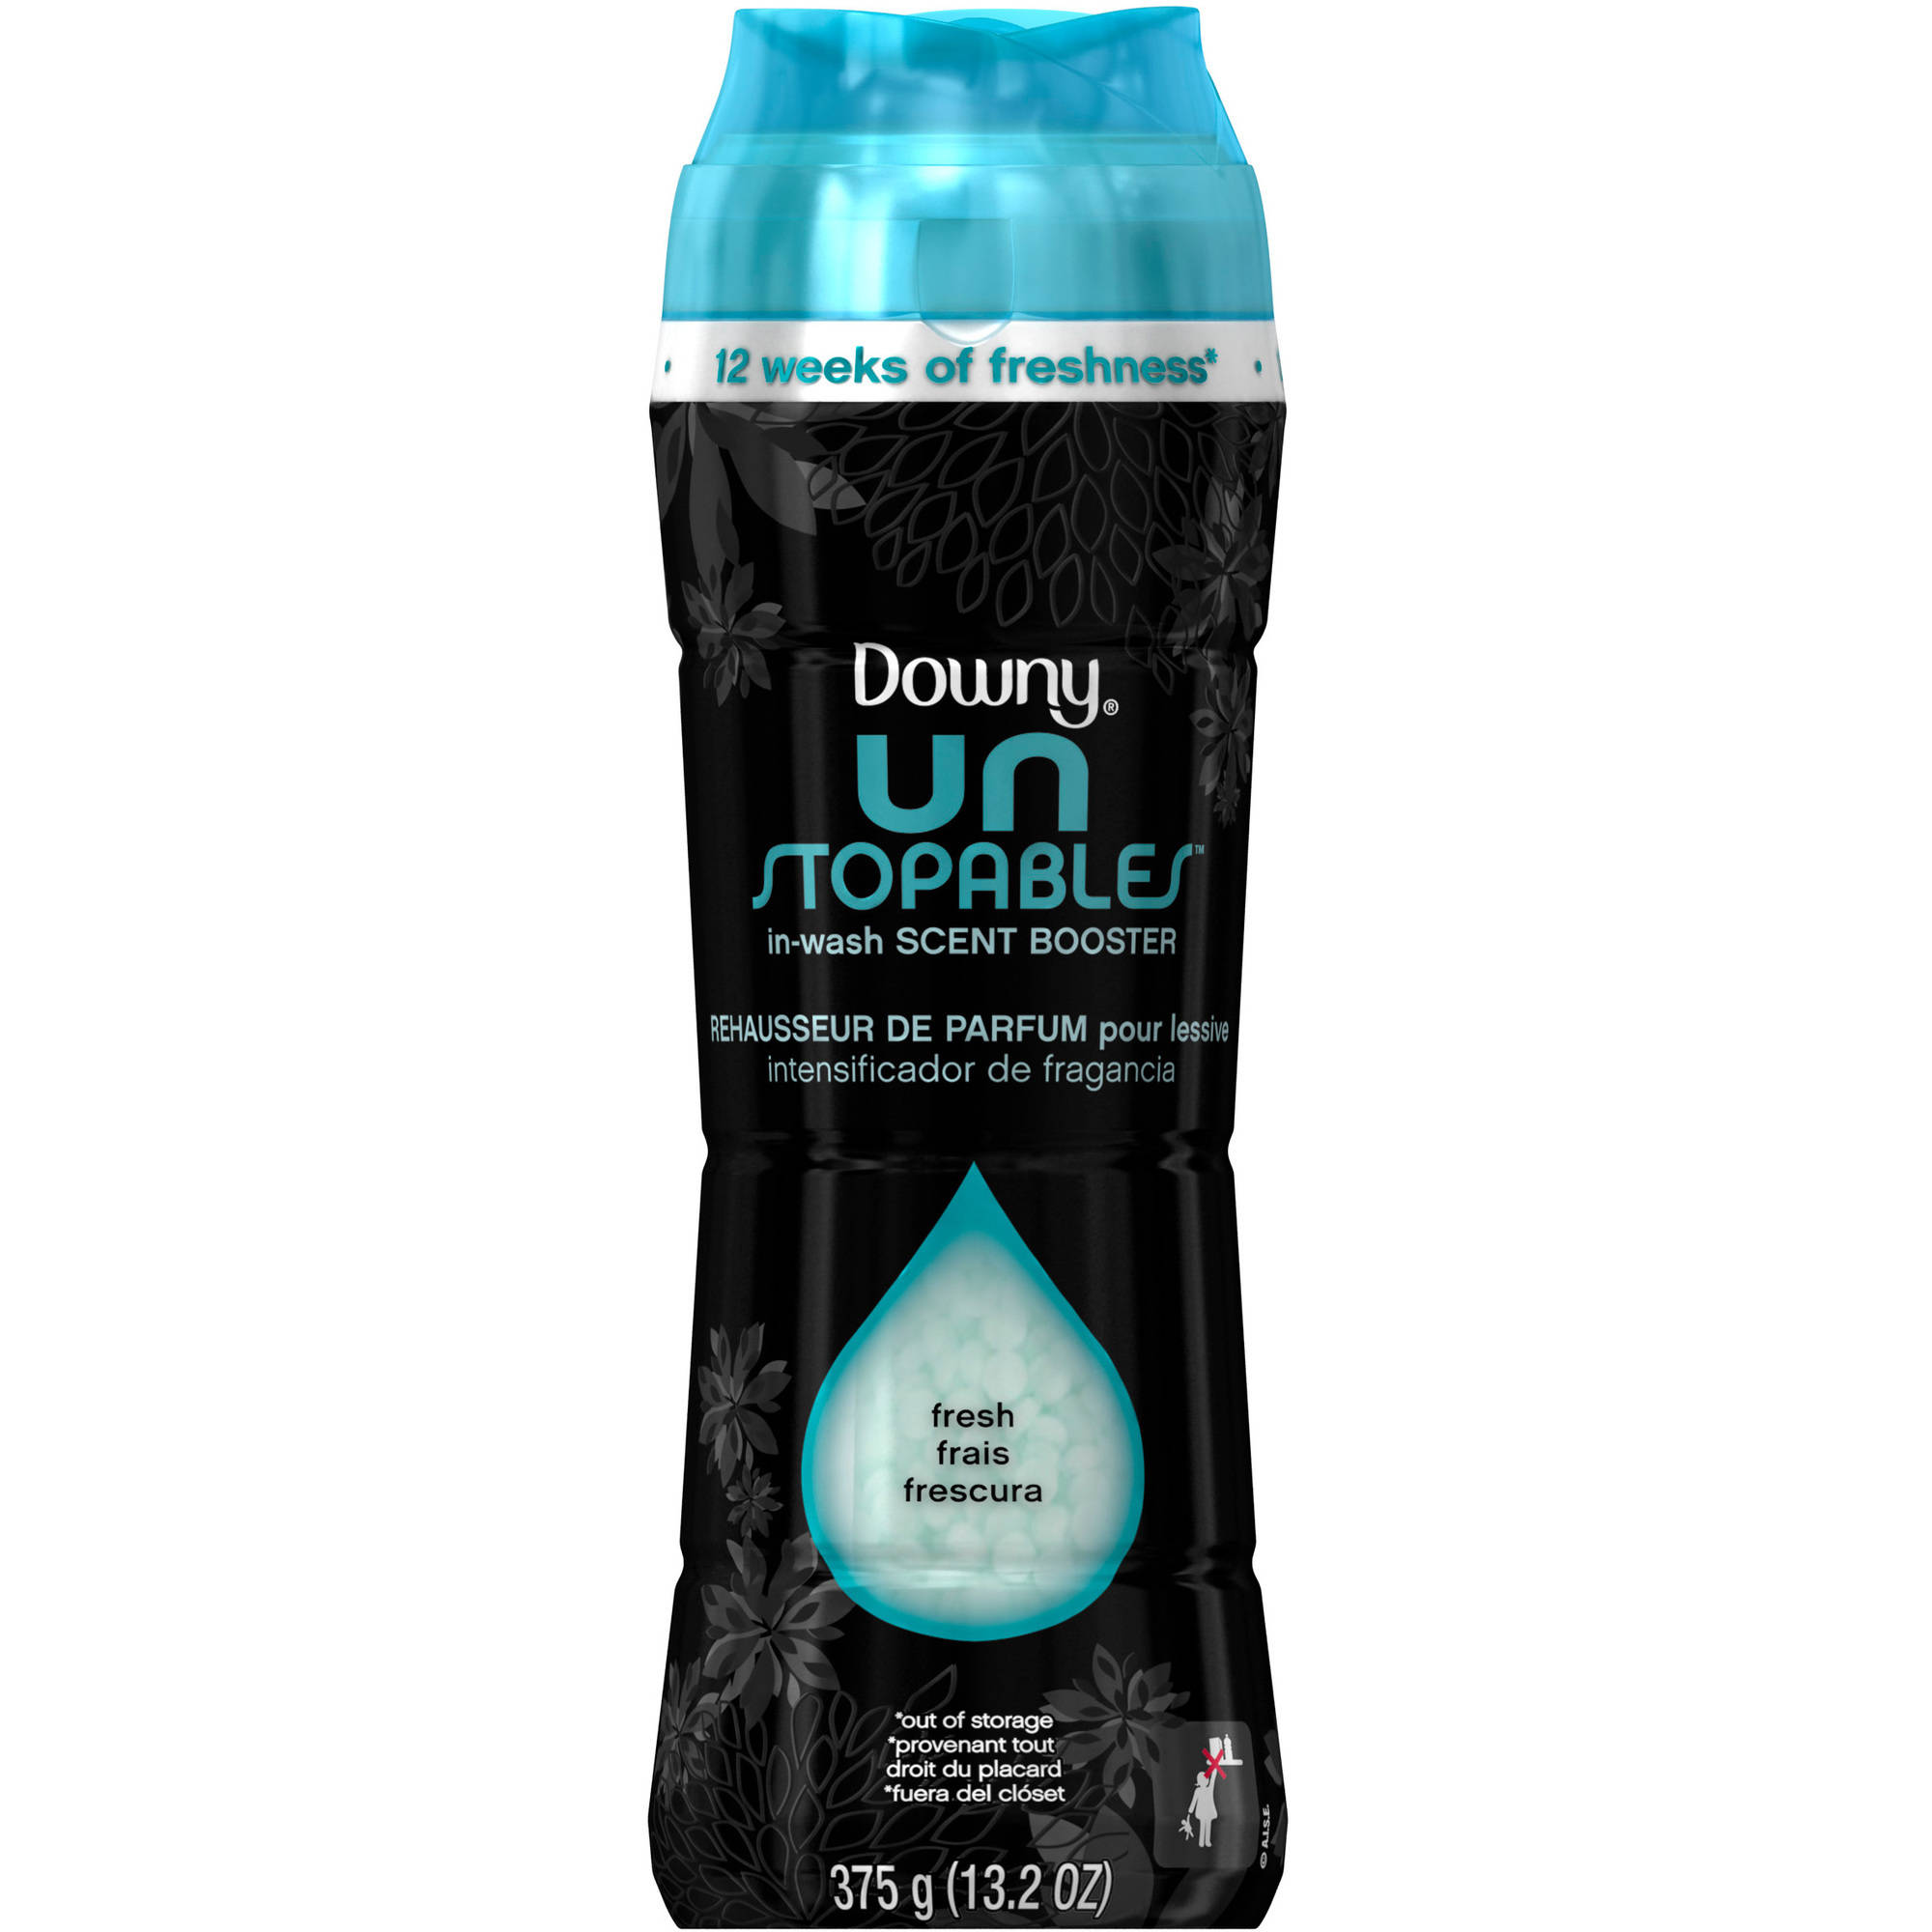 Downy Unstopables In Wash Fresh Scent Booster, 13.2 oz